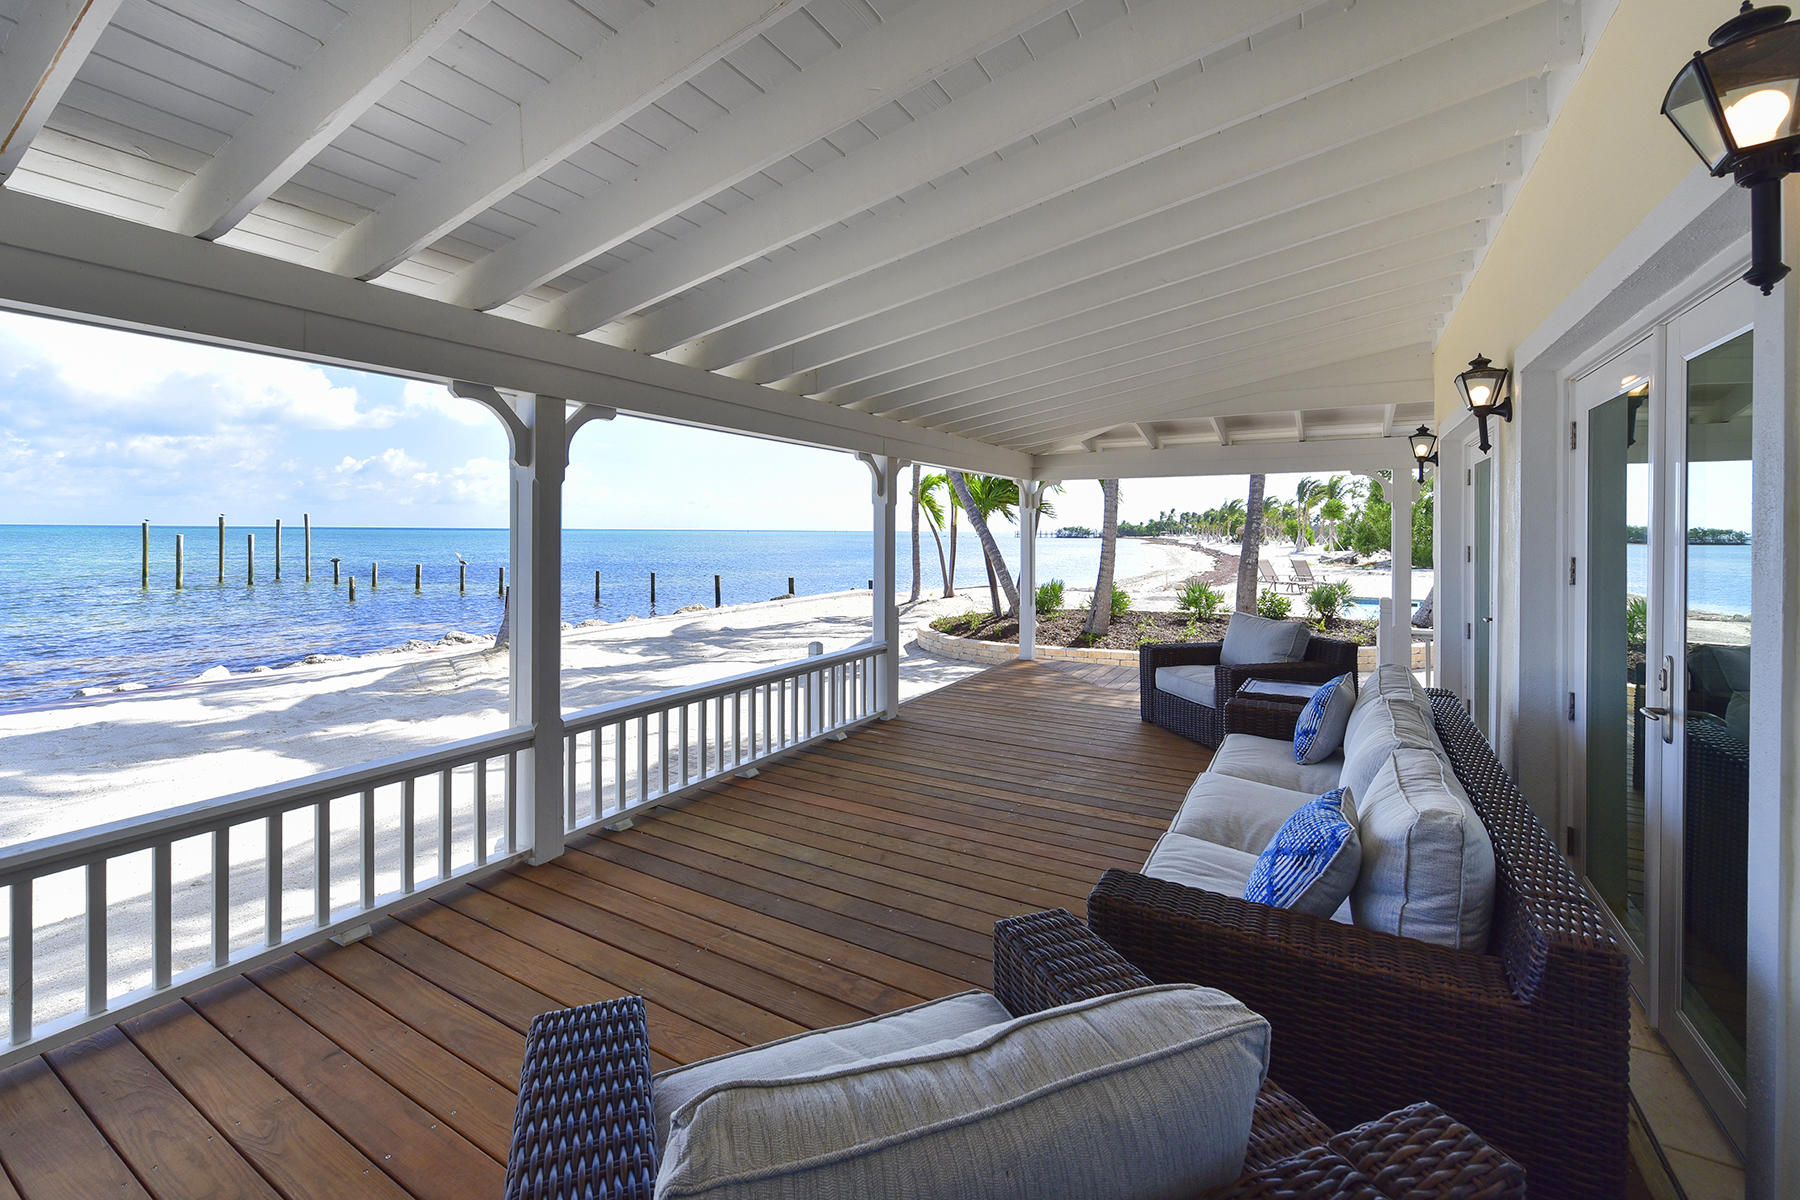 Single Family Homes for Sale at 77001 Overseas Highway, Islamorada, FL 77001 Overseas Highway Islamorada, Florida 33036 United States